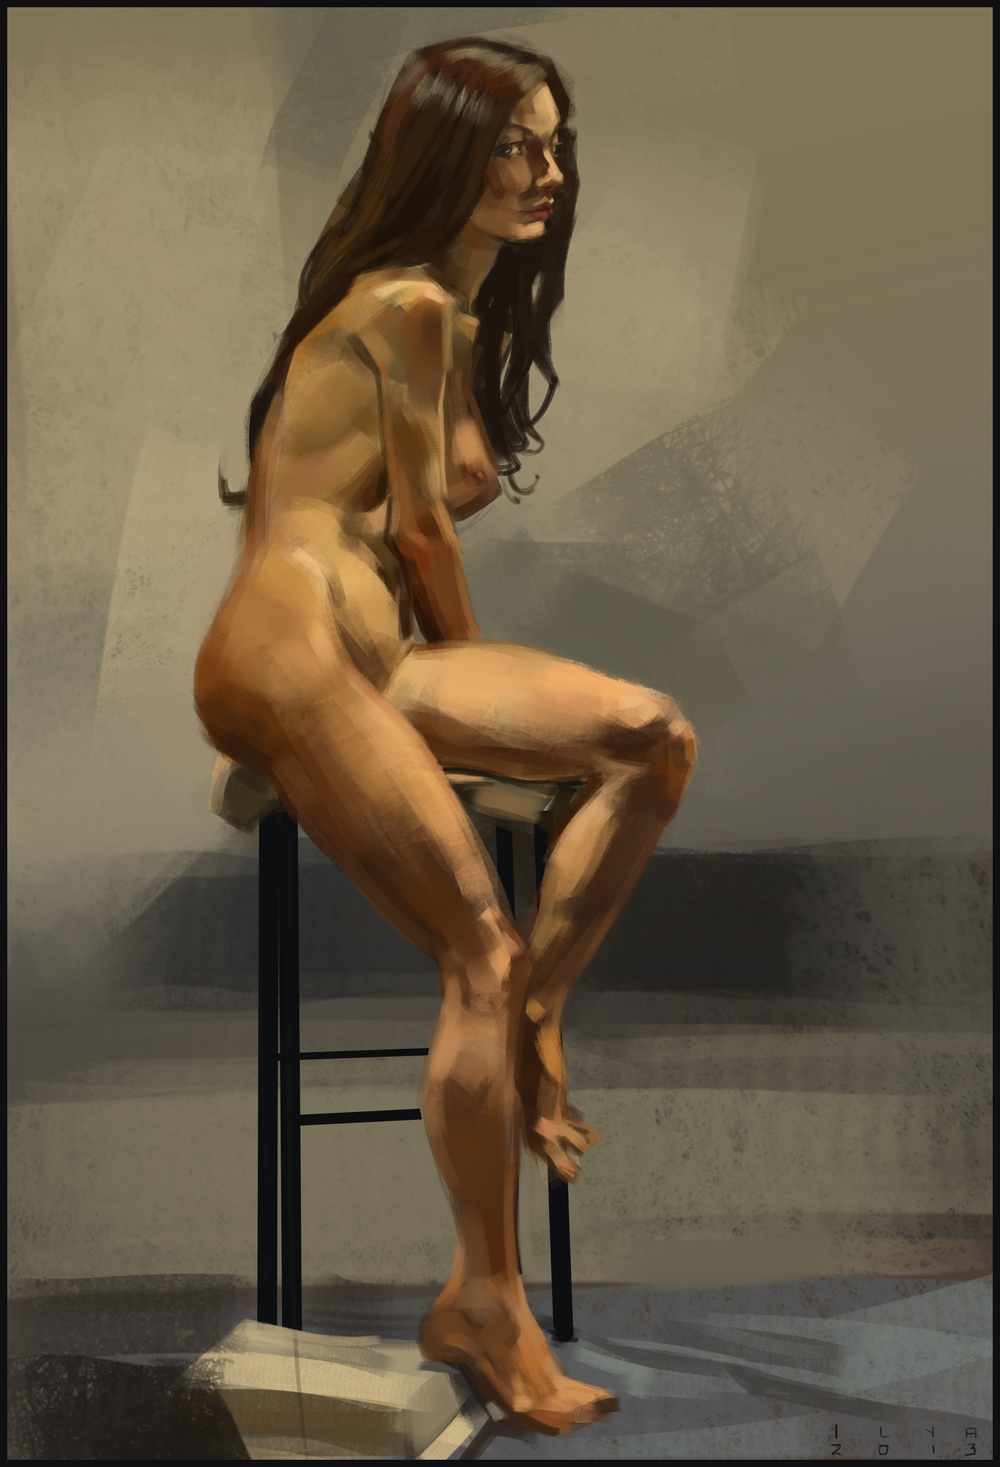 LifeDrawing_May25.jpg